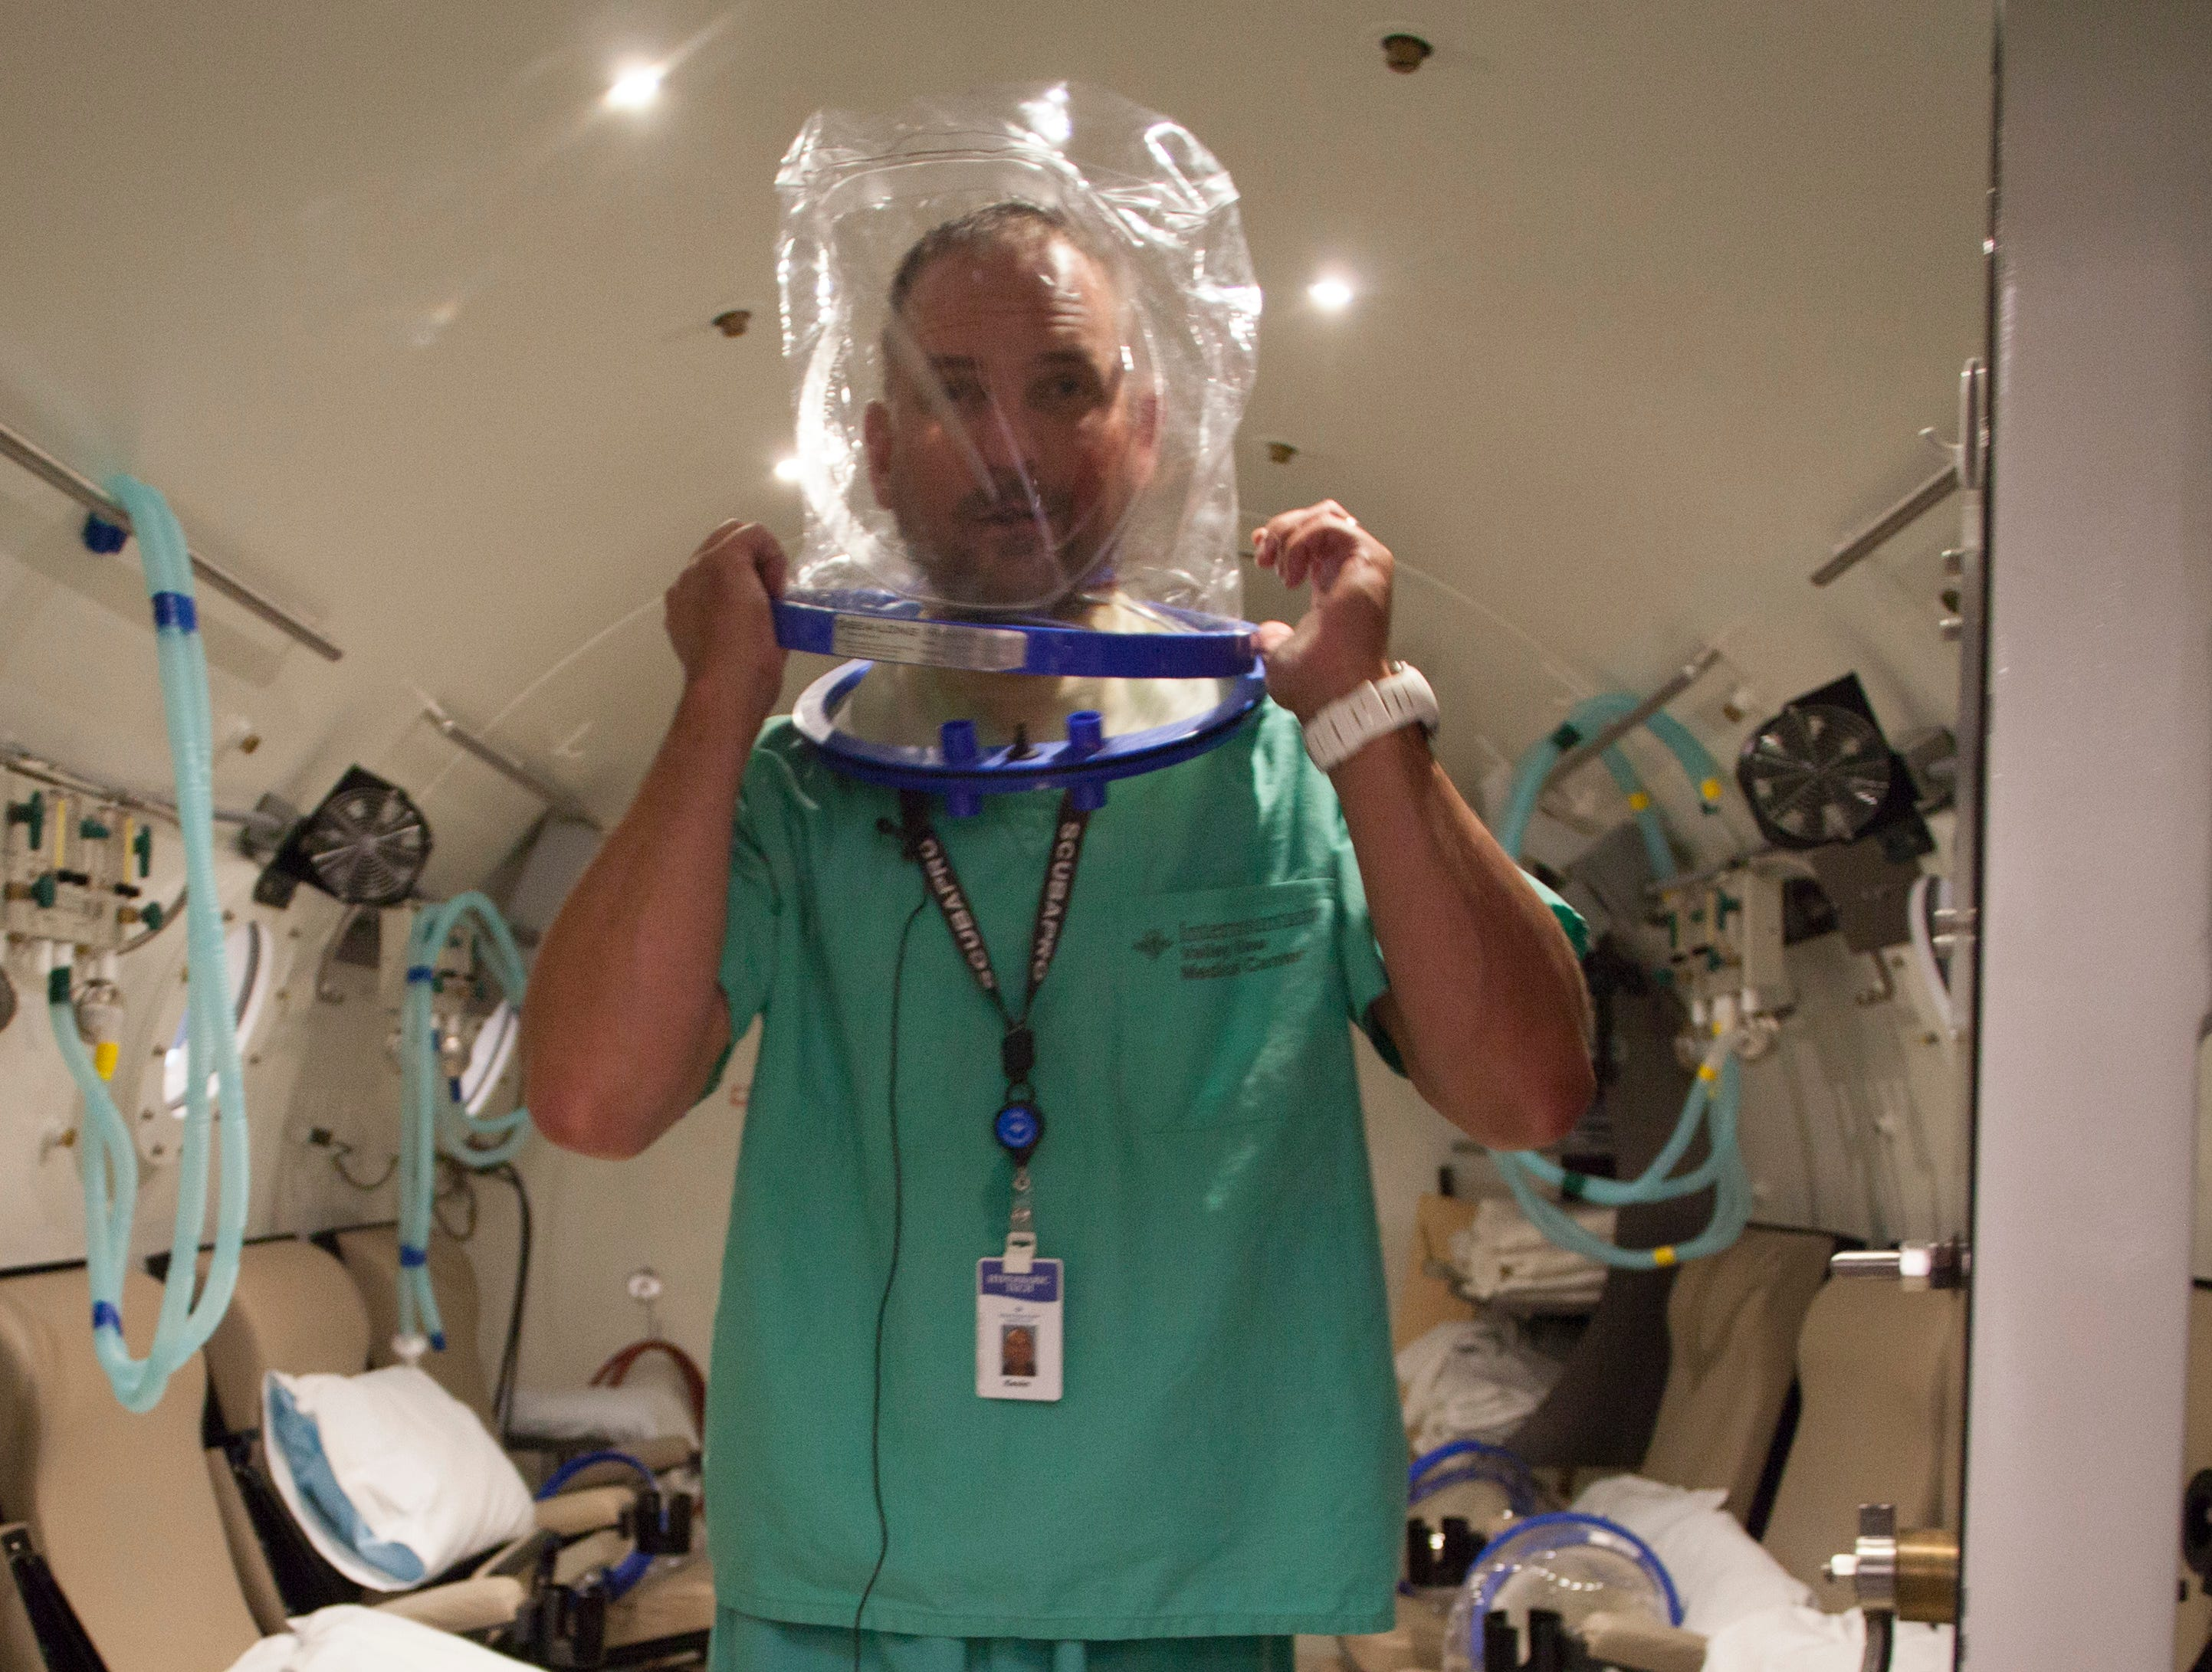 Kevin Dye, Hyperbaric Chamber Technologist at IHC, demonstrates the process patients experience when using the chamber Wednesday, Sept. 5, 2018.